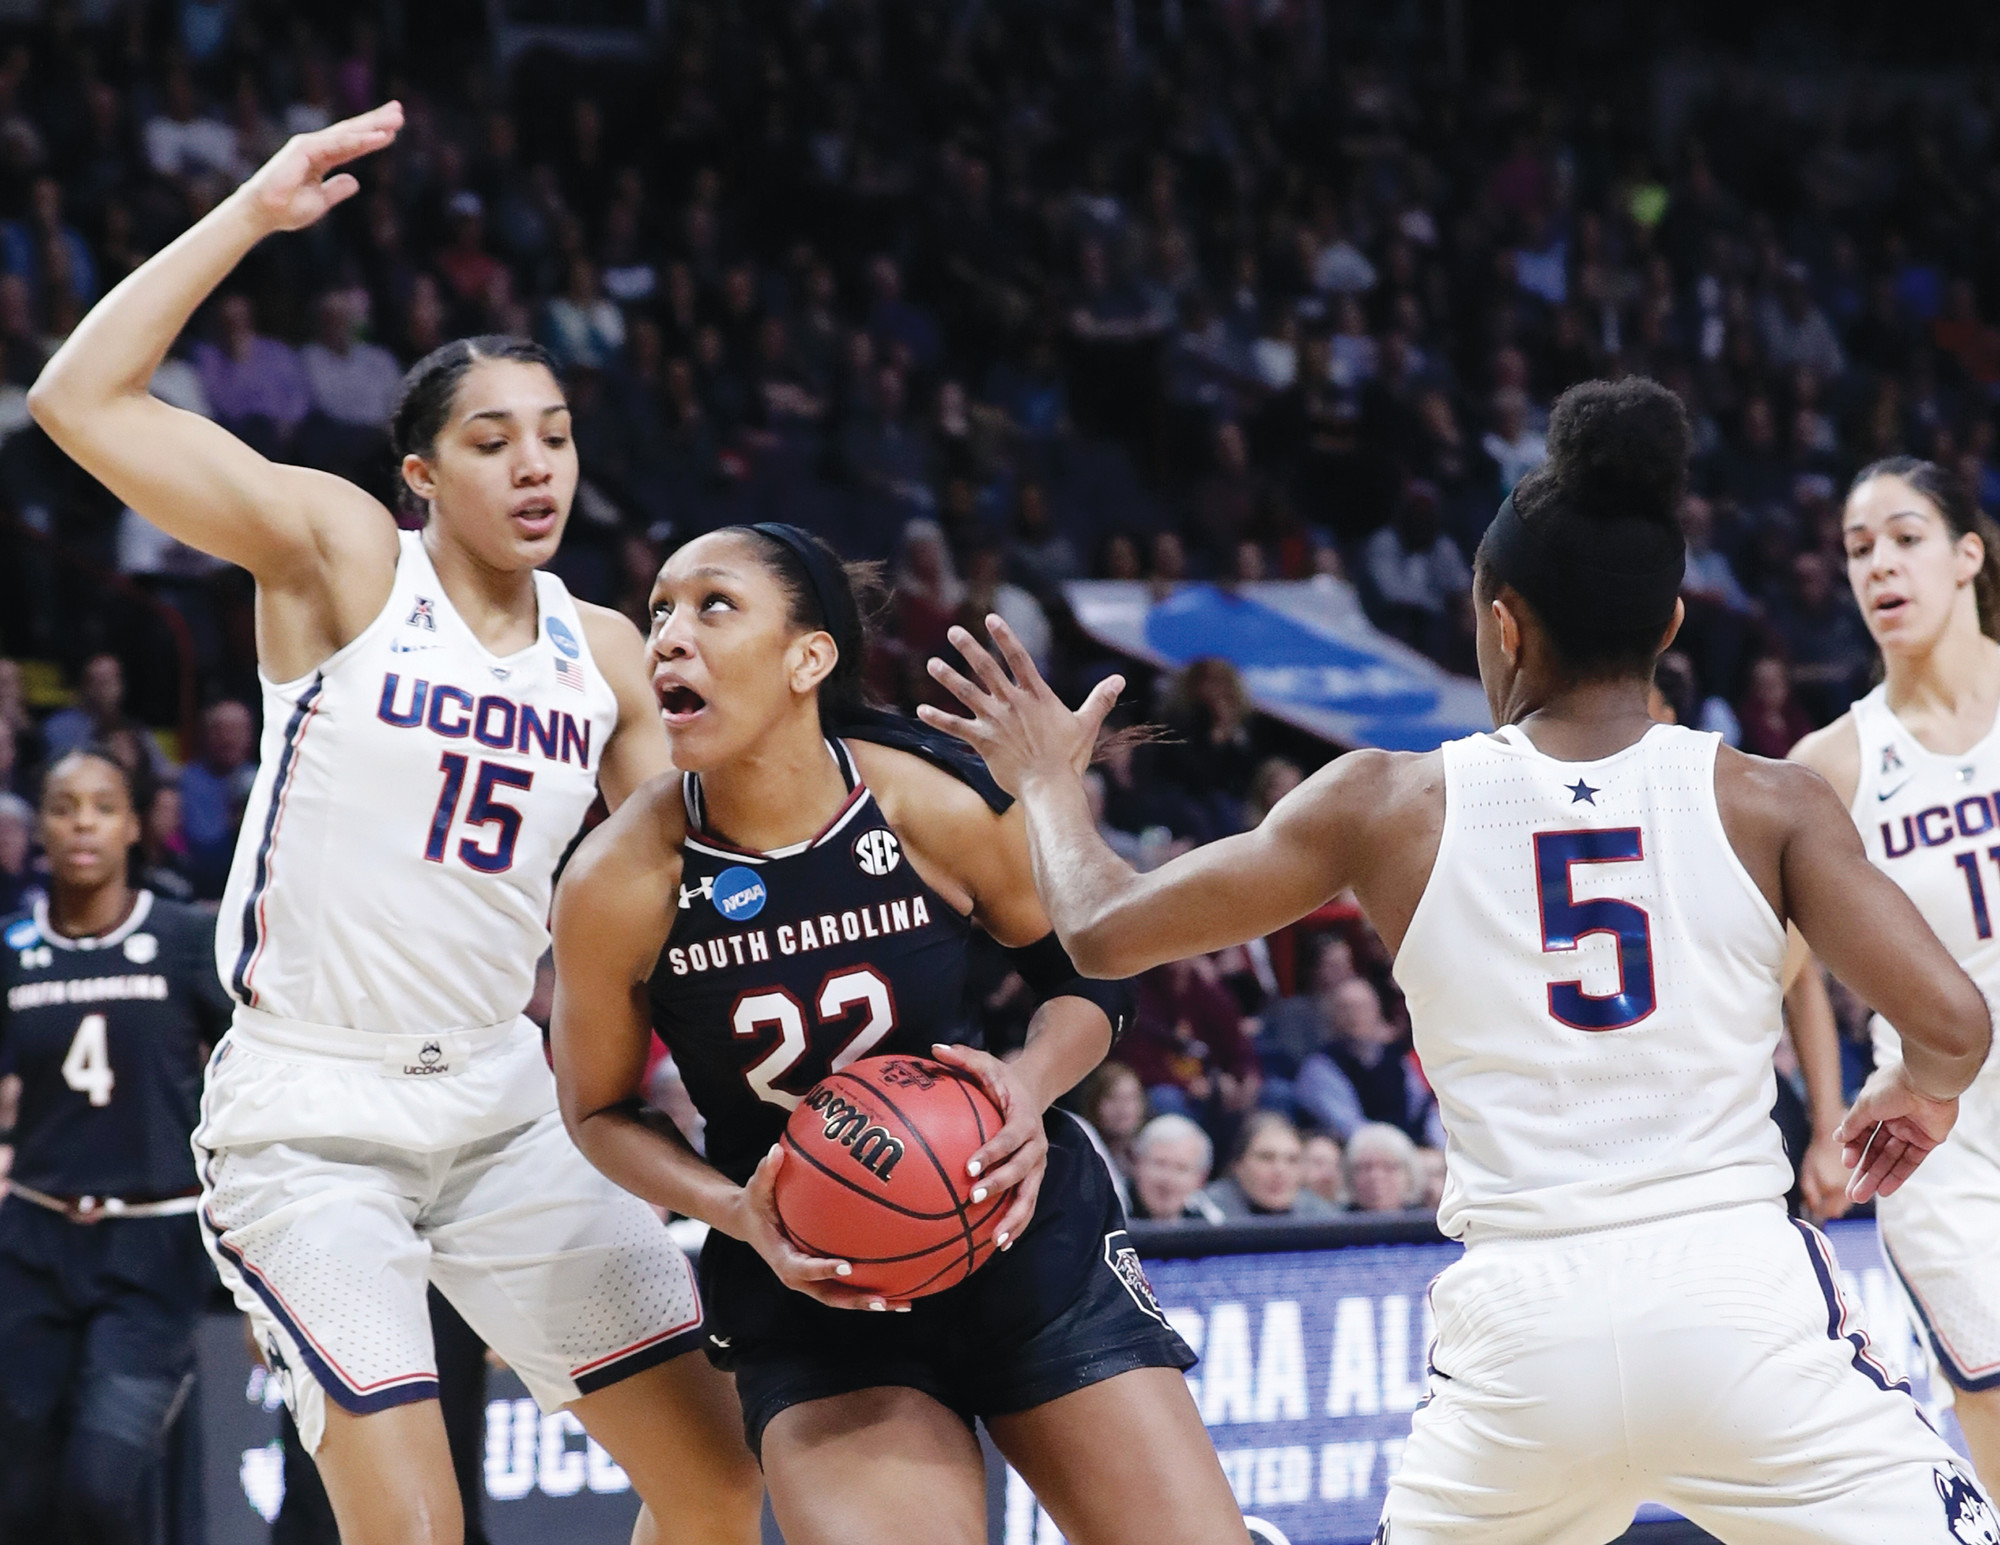 South Carolina's A'ja Wilson was named the Associated Press' women's player of the year on Thursday, the first player from the school to be so honored.